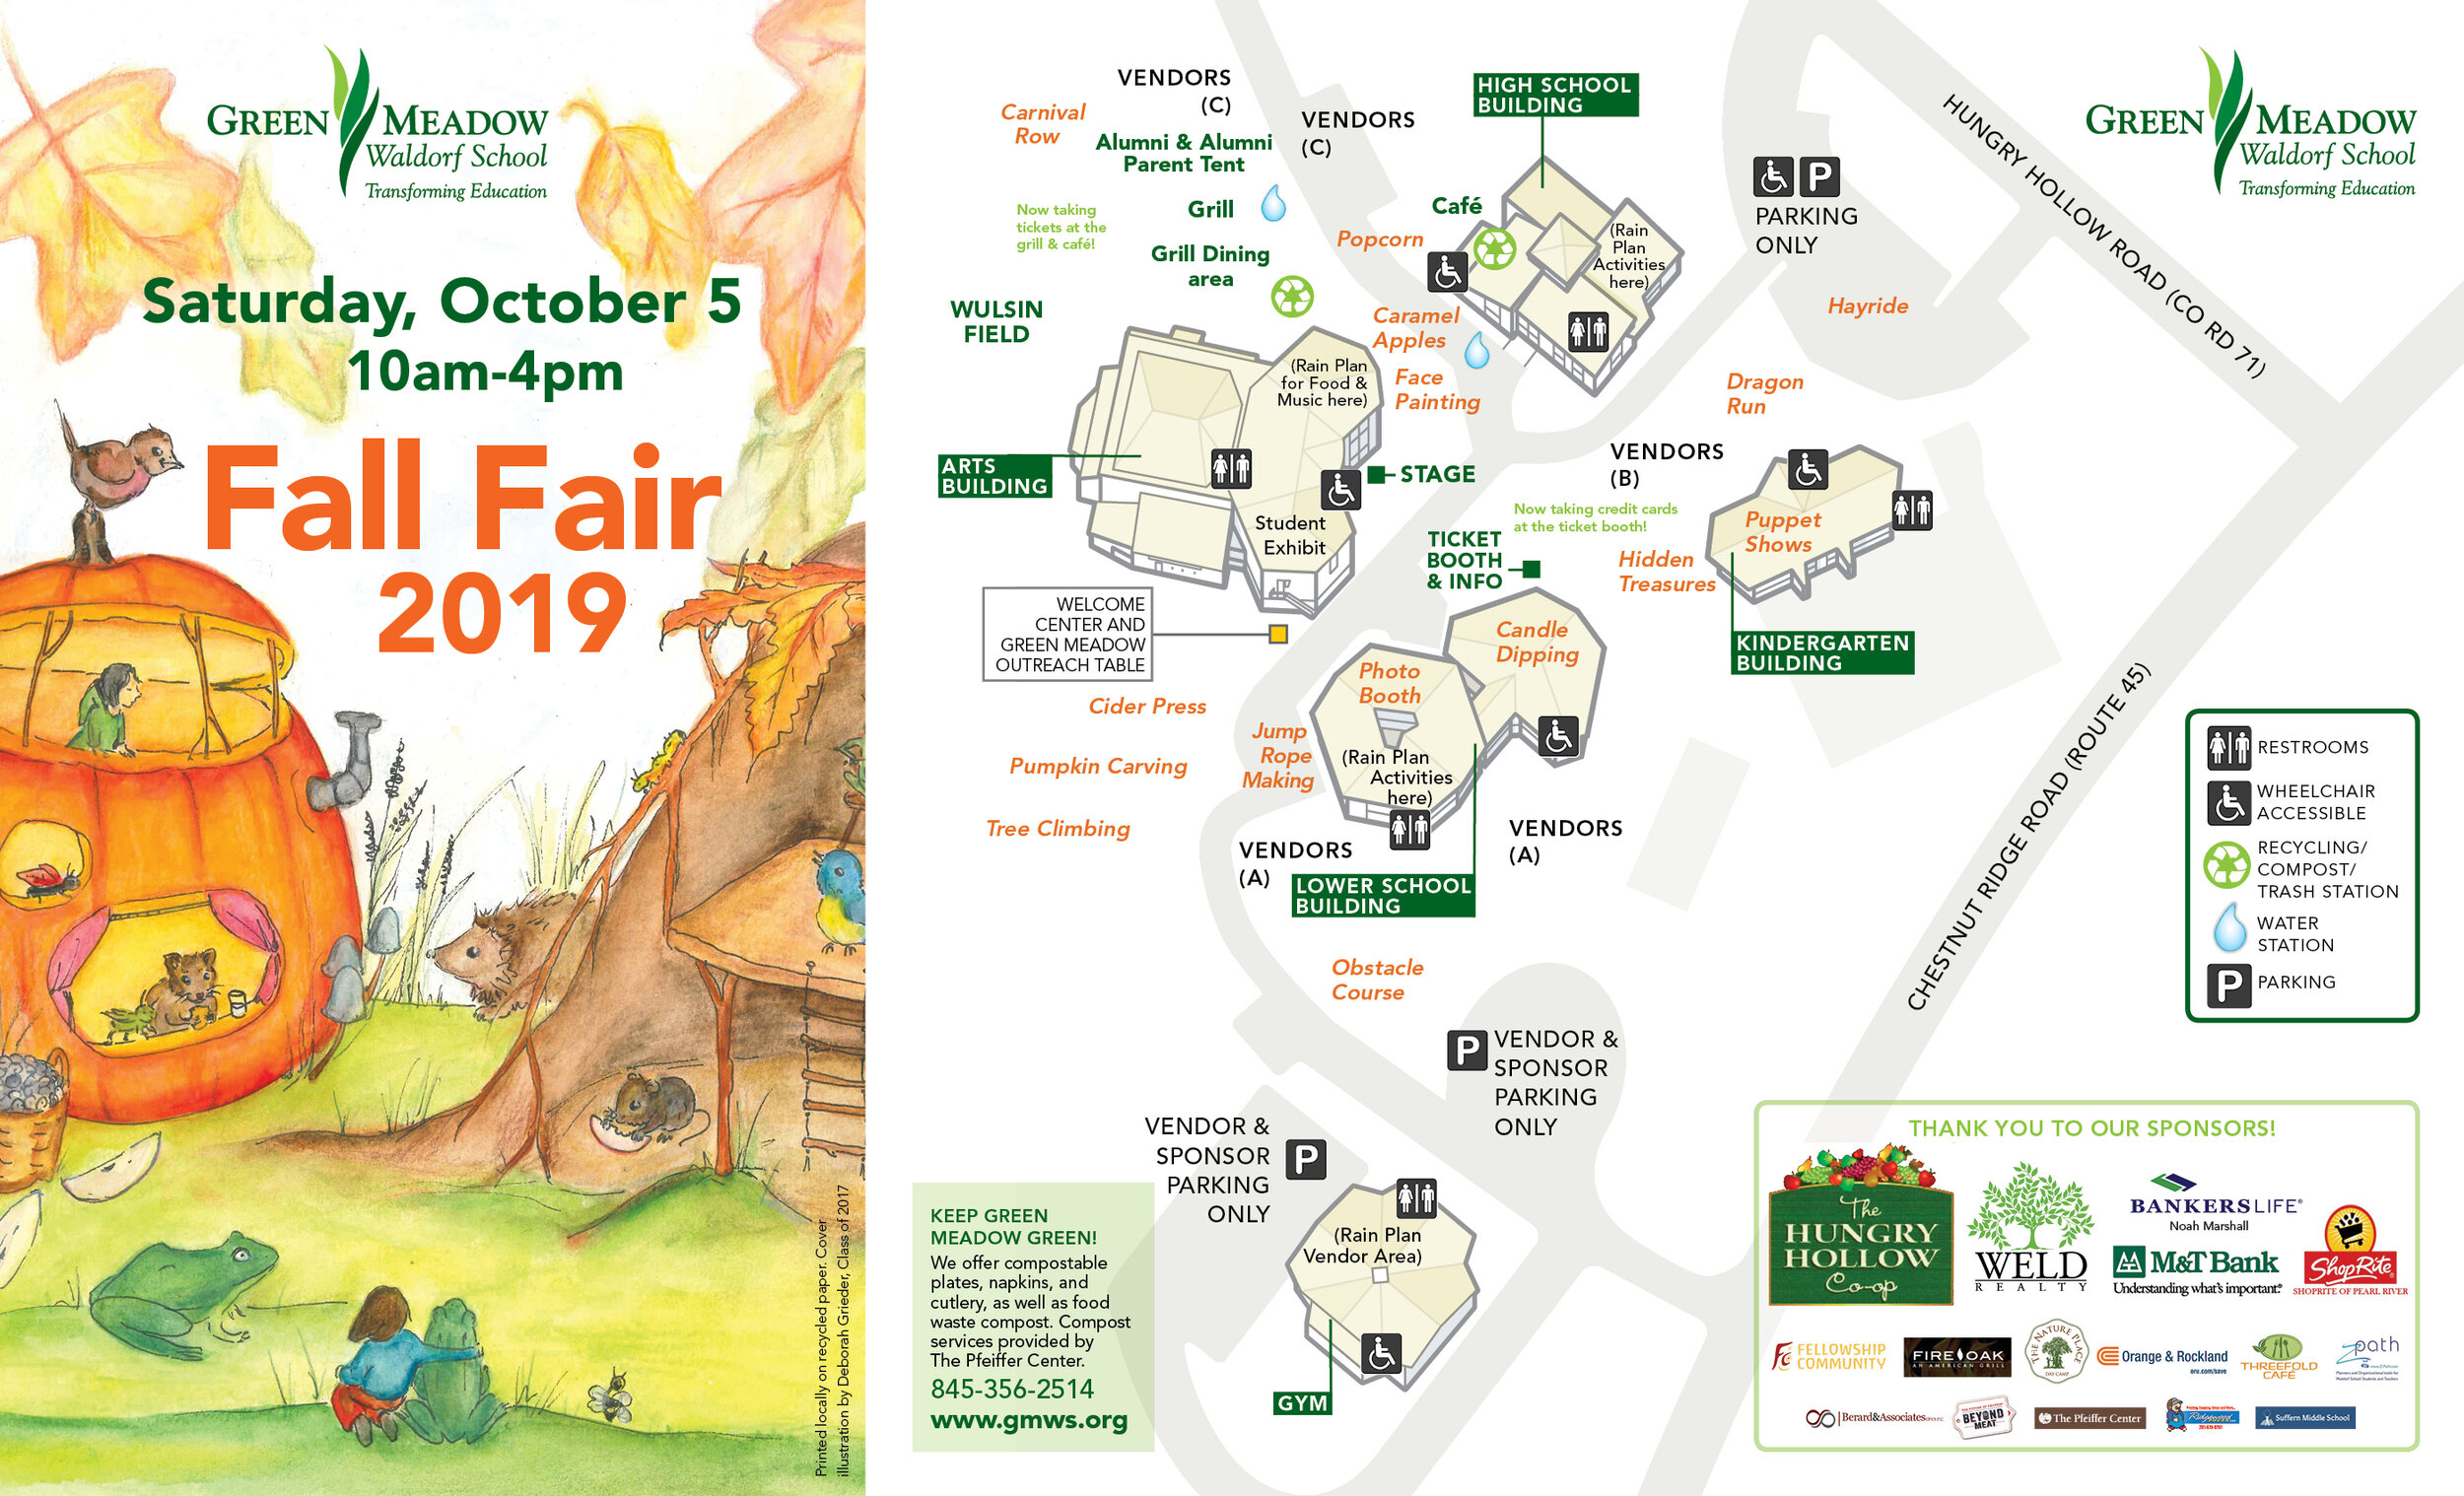 Click this map to see an enlargeable PDF. We will also have printed copies at the Fair.